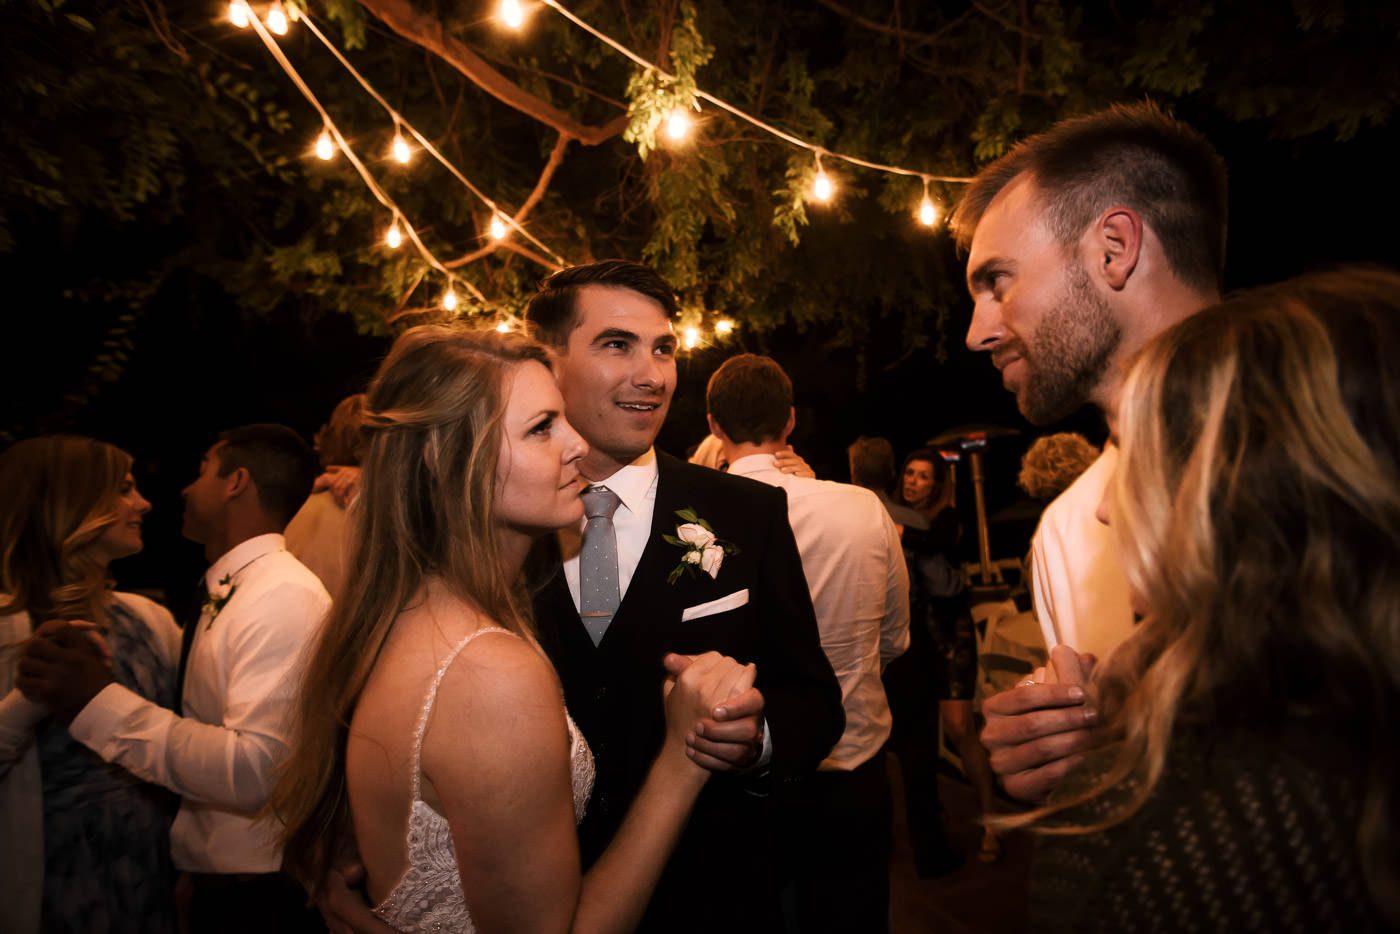 Couples hit the dance floor for a roamntic slow dance and chat with the bride and groom.